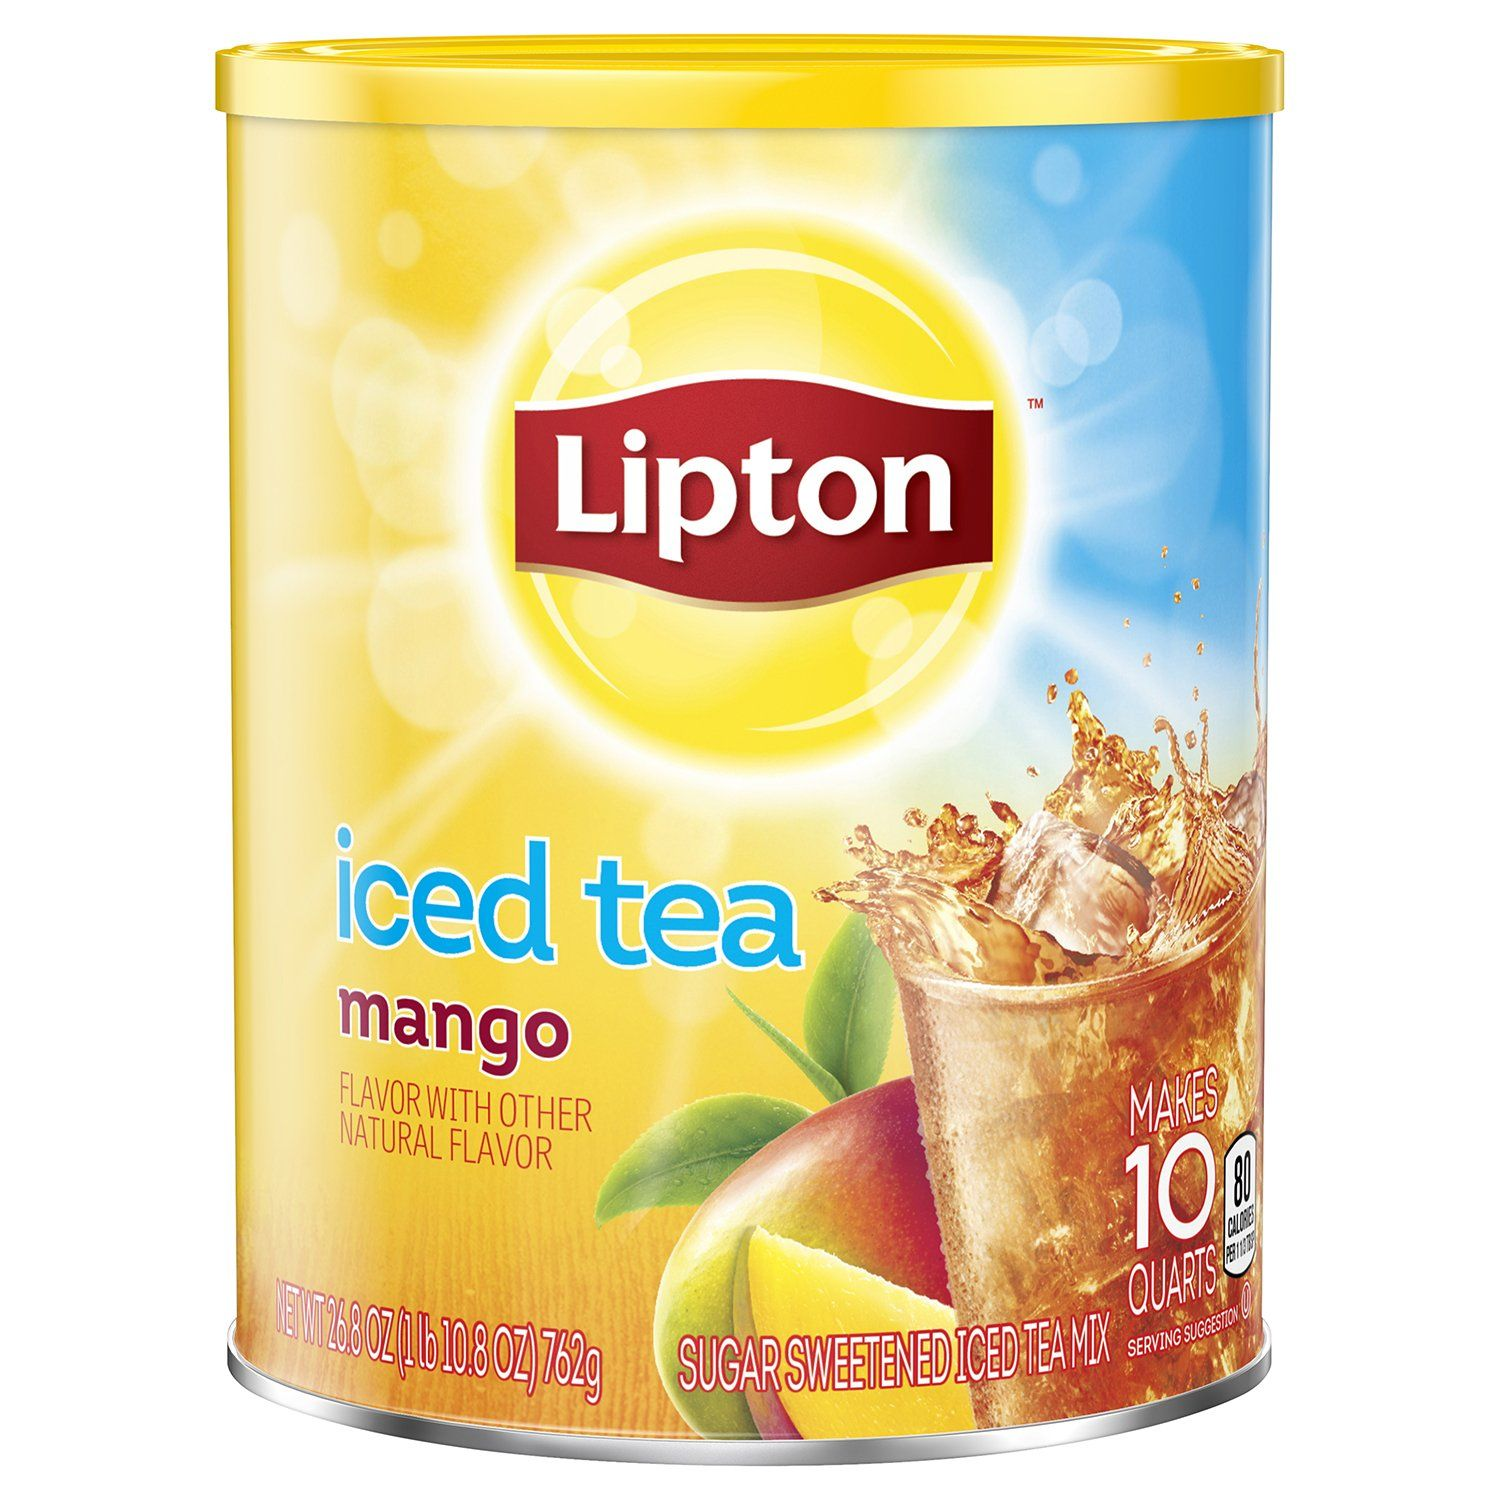 Lipton Iced Tea Mix Lipton Mango 23.6 Ounce